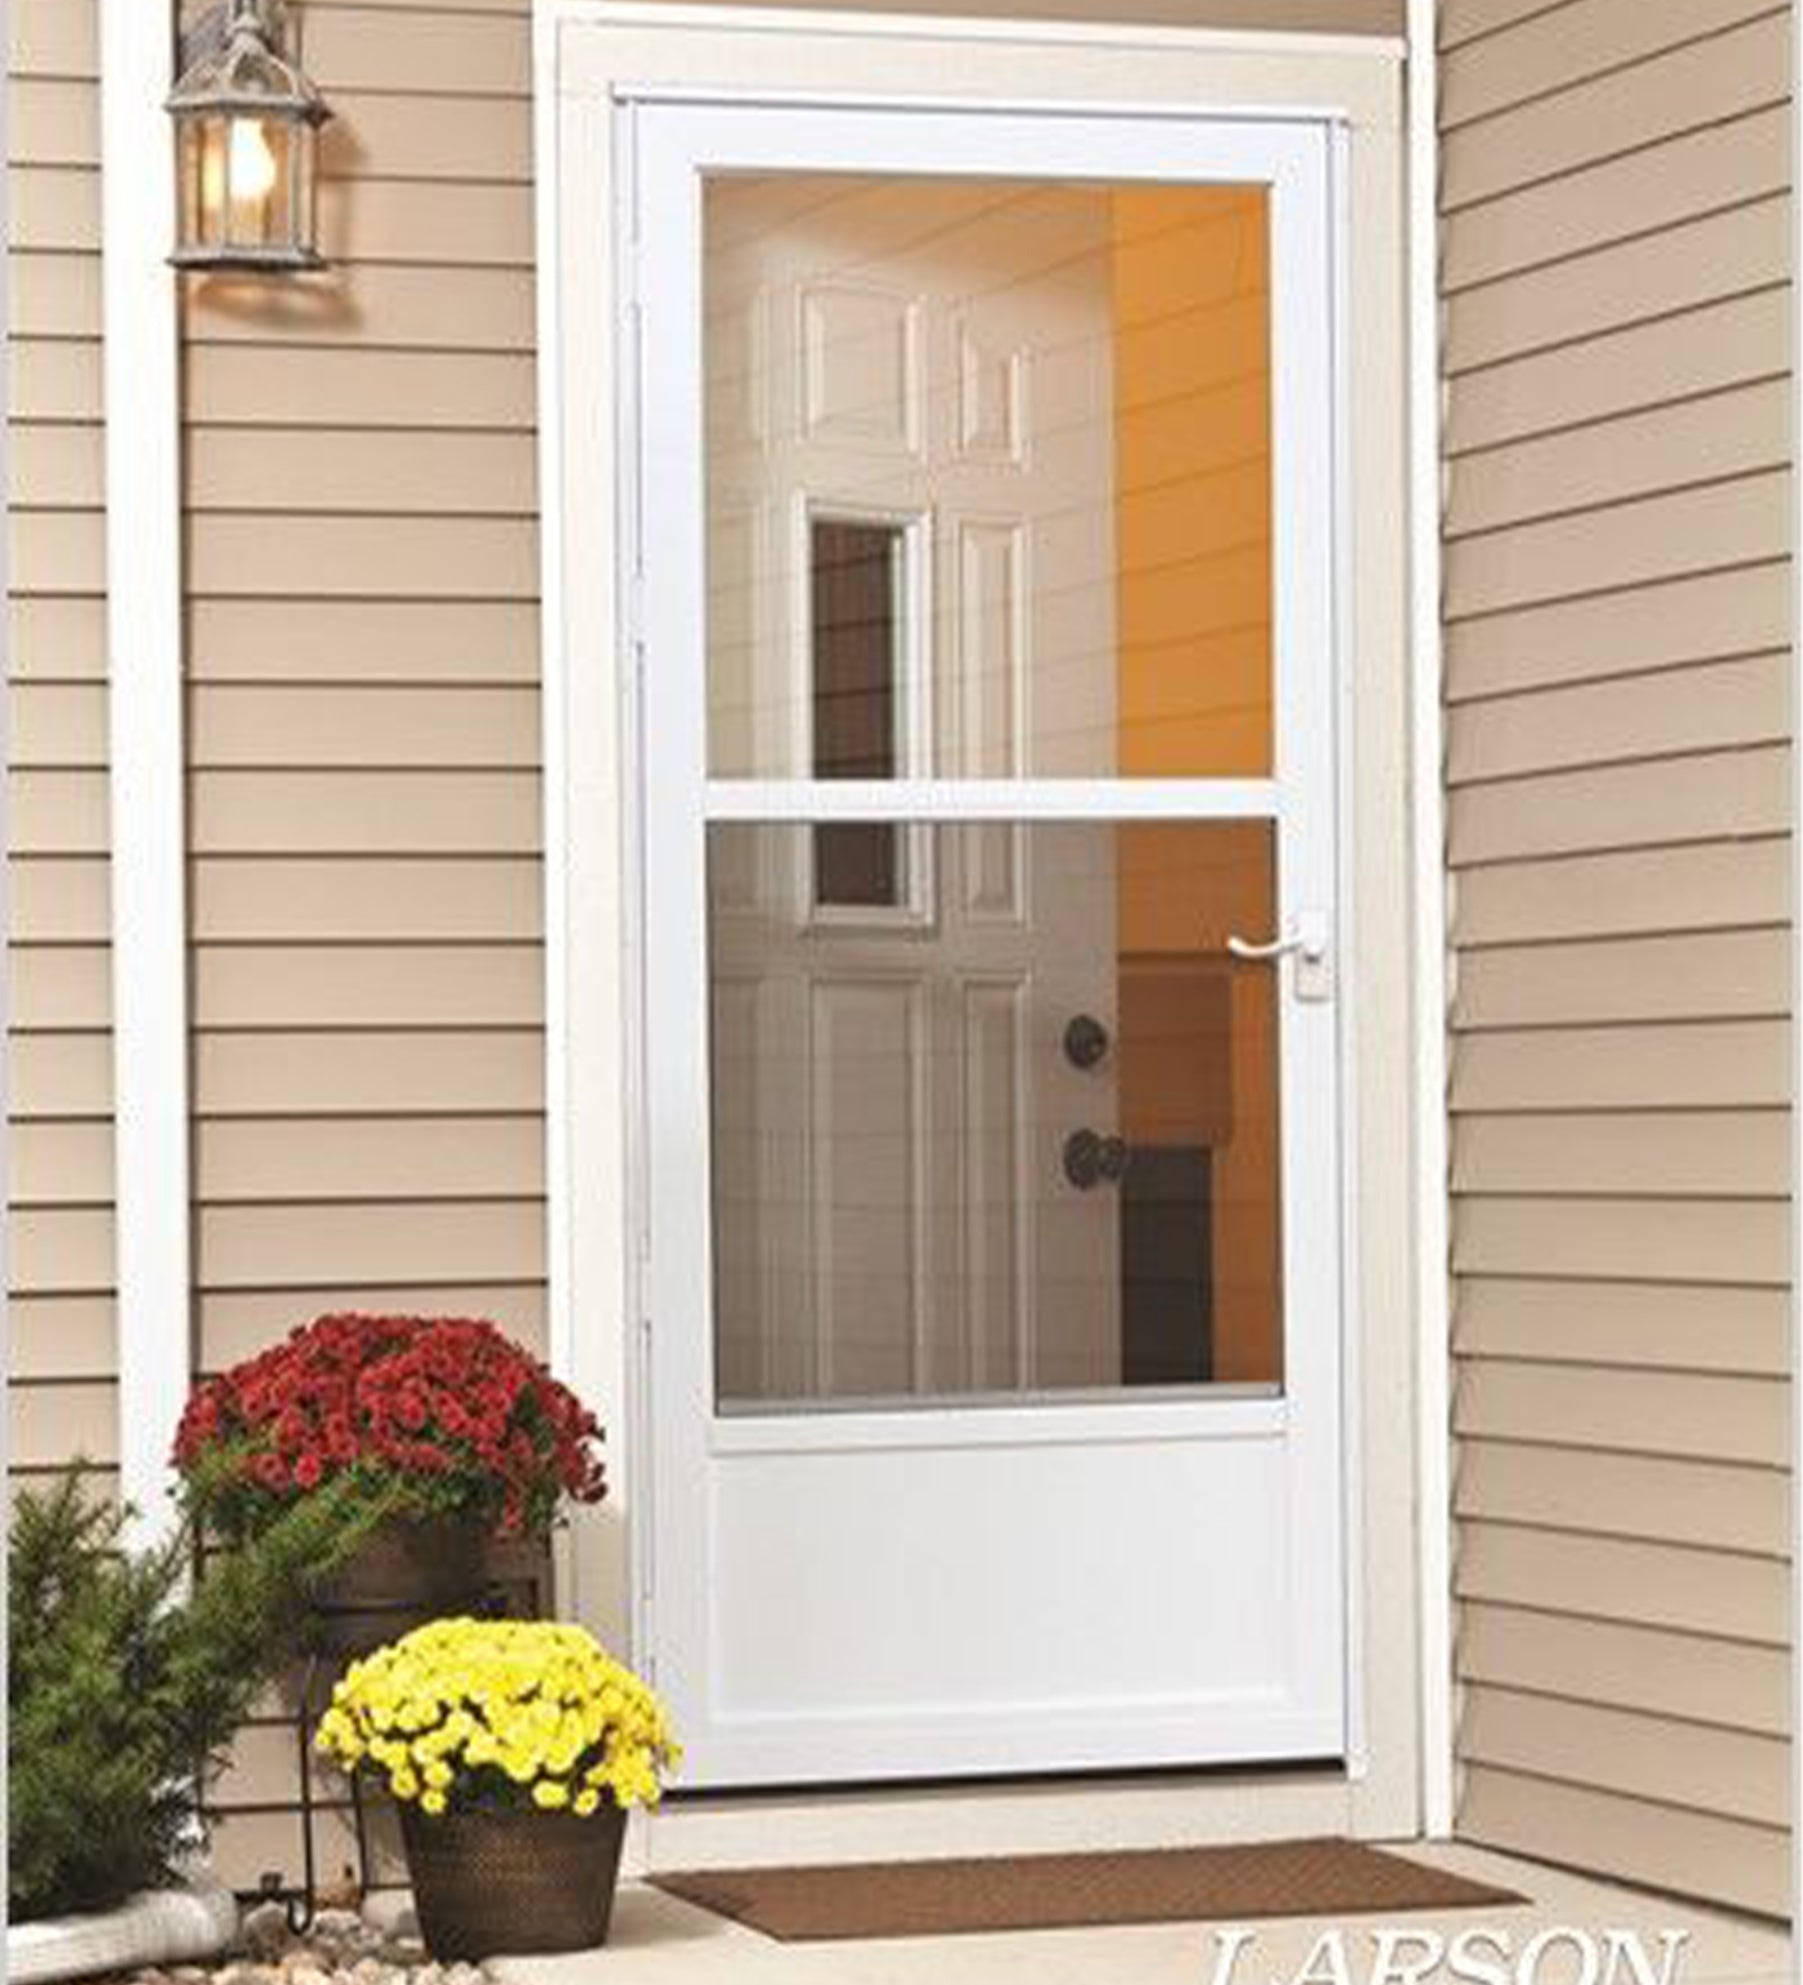 INSTALLED Larson Classic-View Reversa Screen Storm Door w/ Hardware STARTING $390